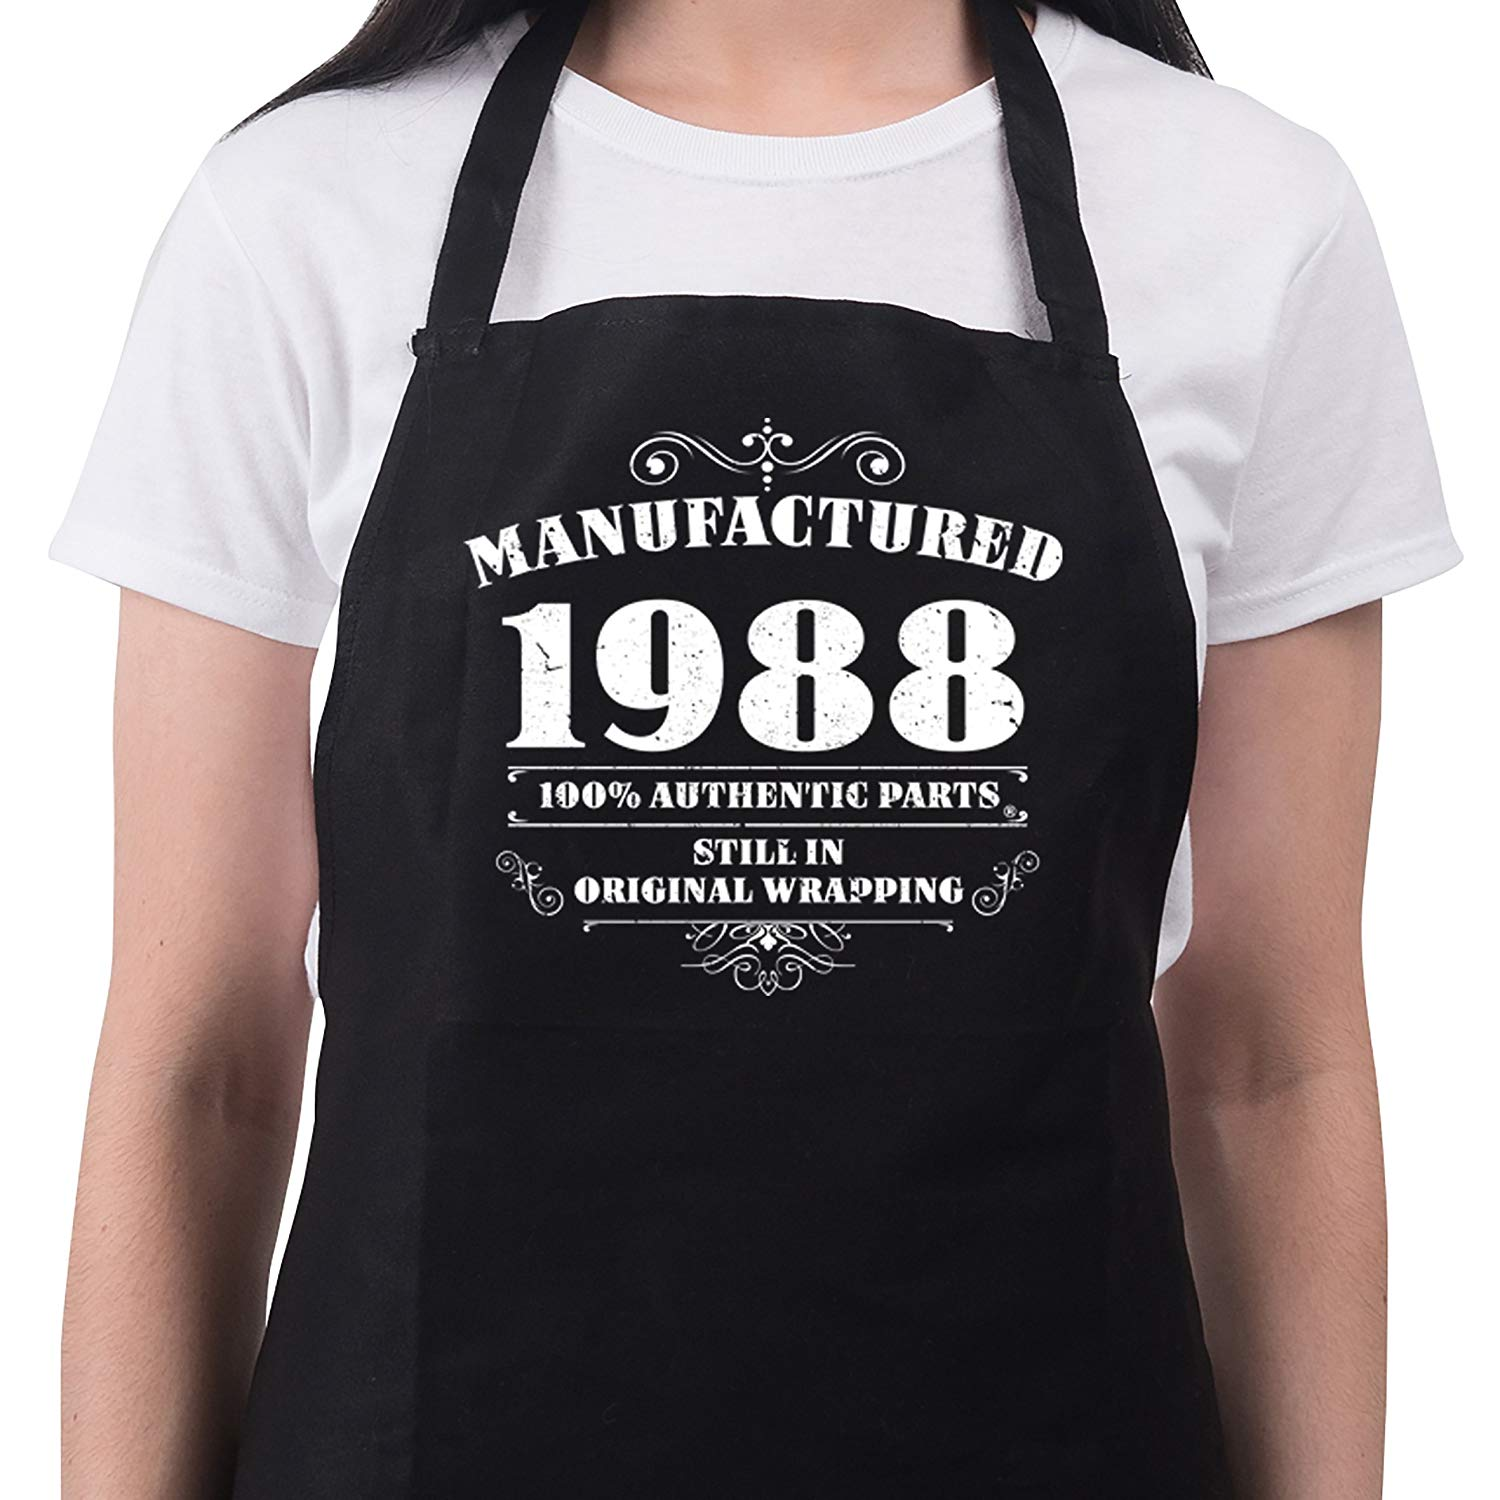 Womens 30th Birthday Gift Apron Manufactured 1988 Aprons Gifts